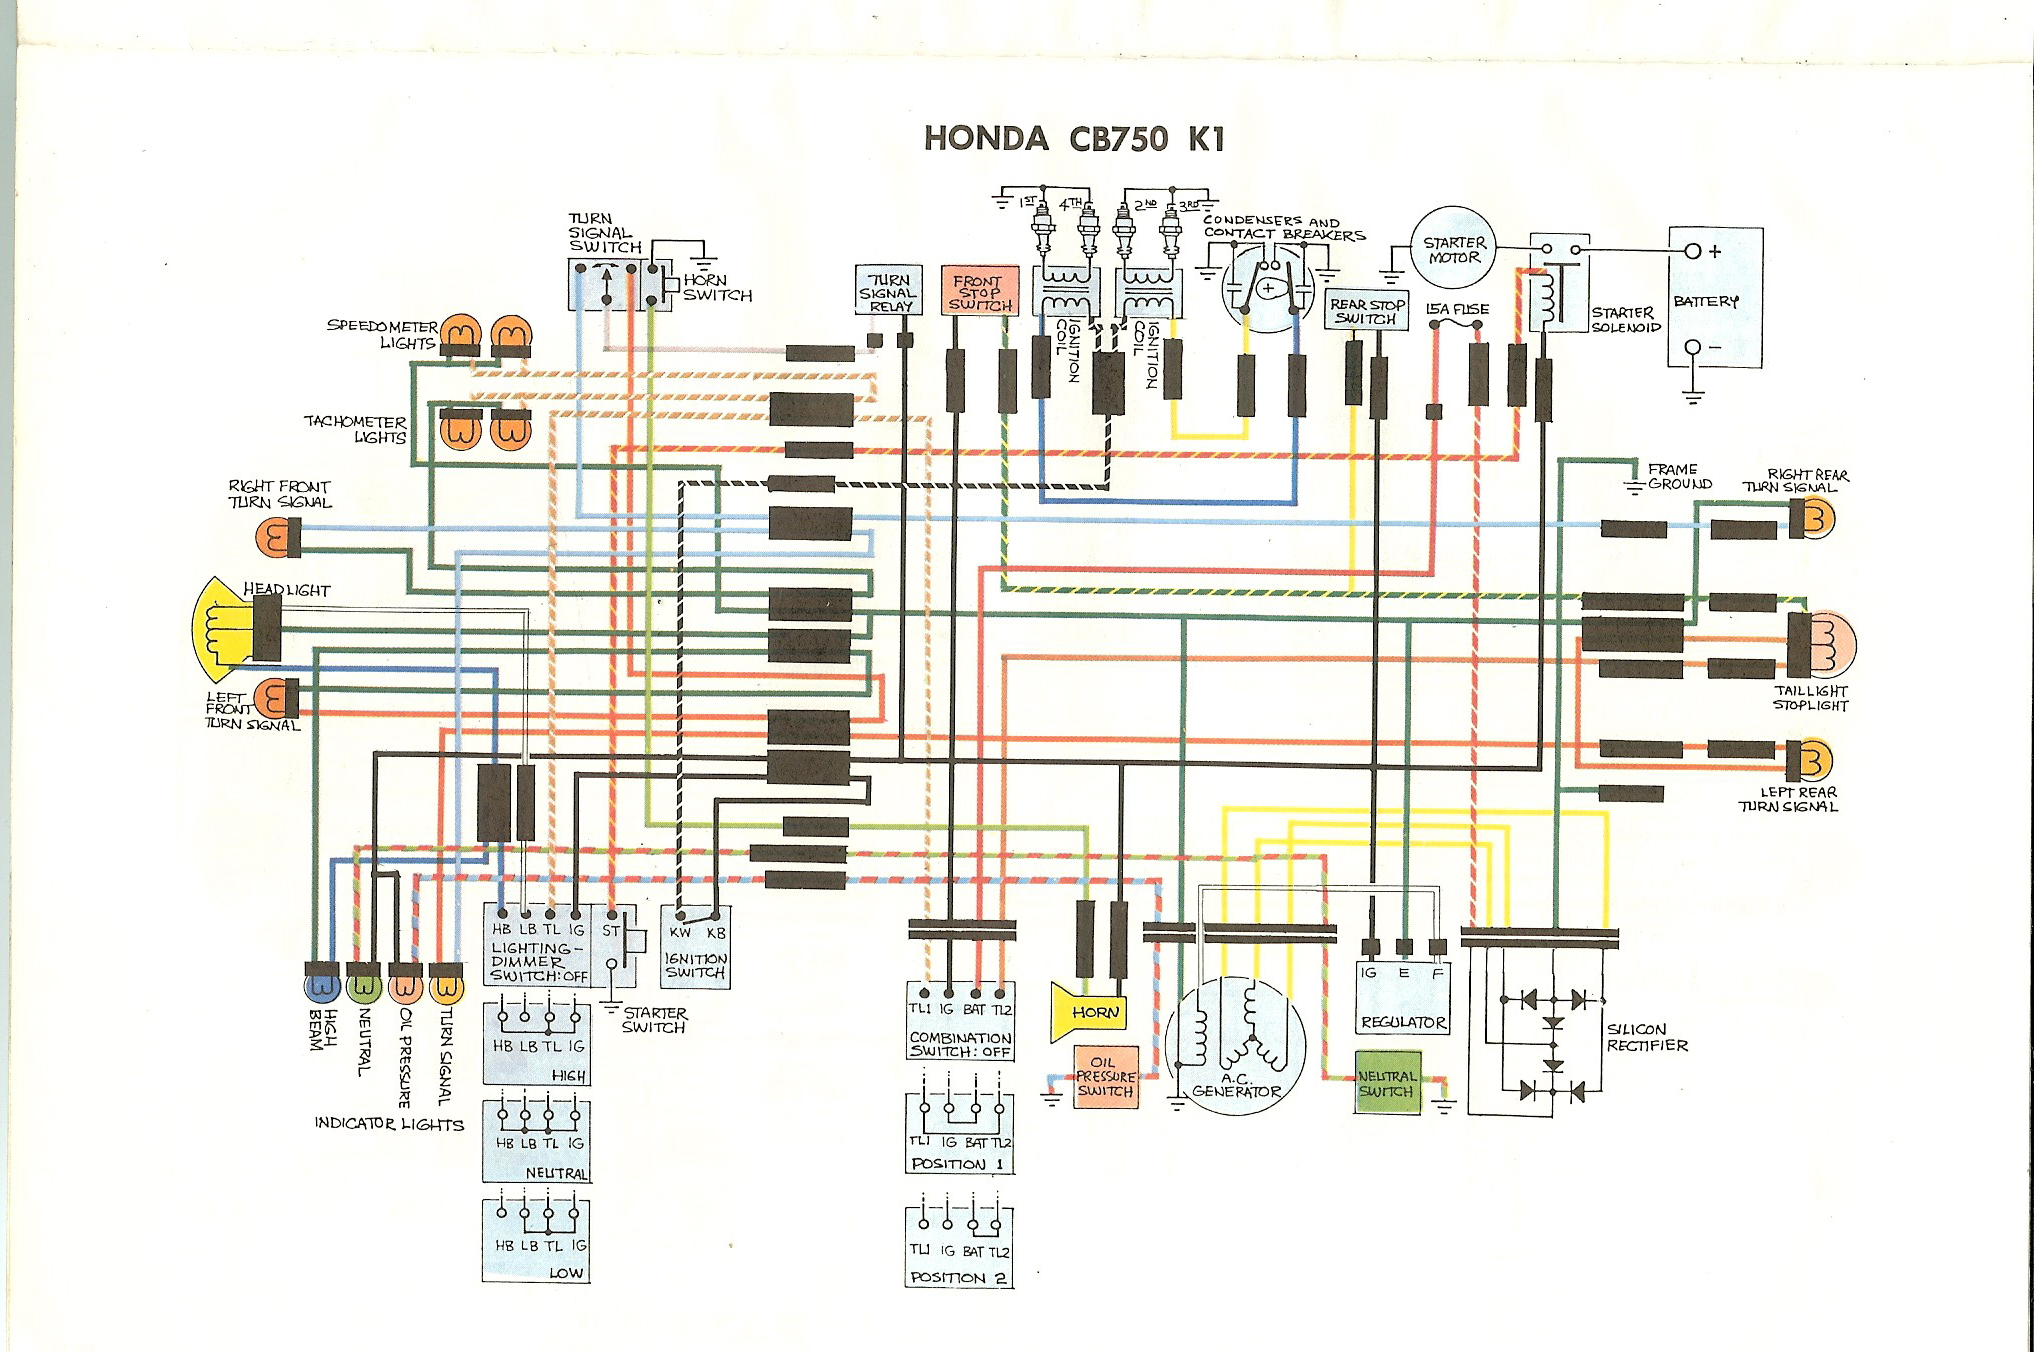 1969 Honda 90 Wiring Diagram Dental Lathe Wiring Diagram 2 Speed Autostereo Holden Commodore Jeanjaures37 Fr